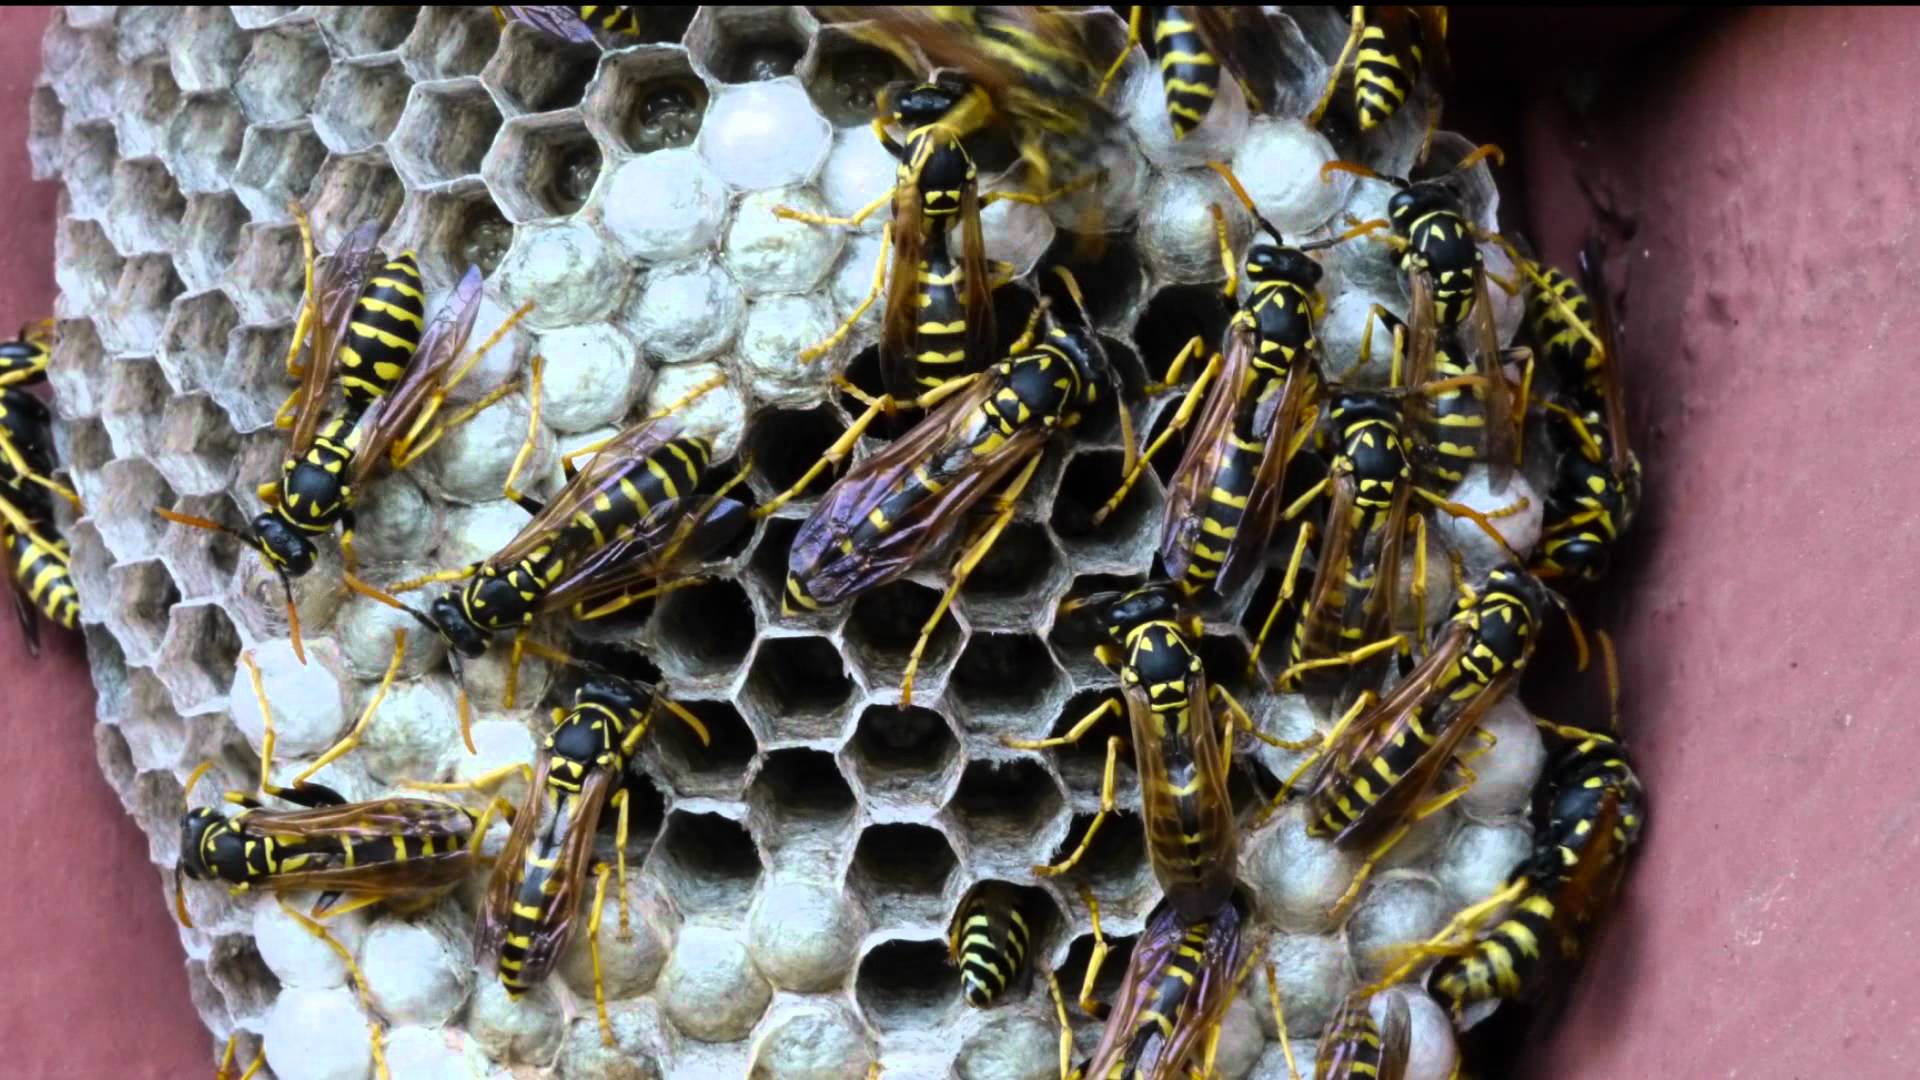 Yellow Jackets or Honeybees  Honey Bee Removal